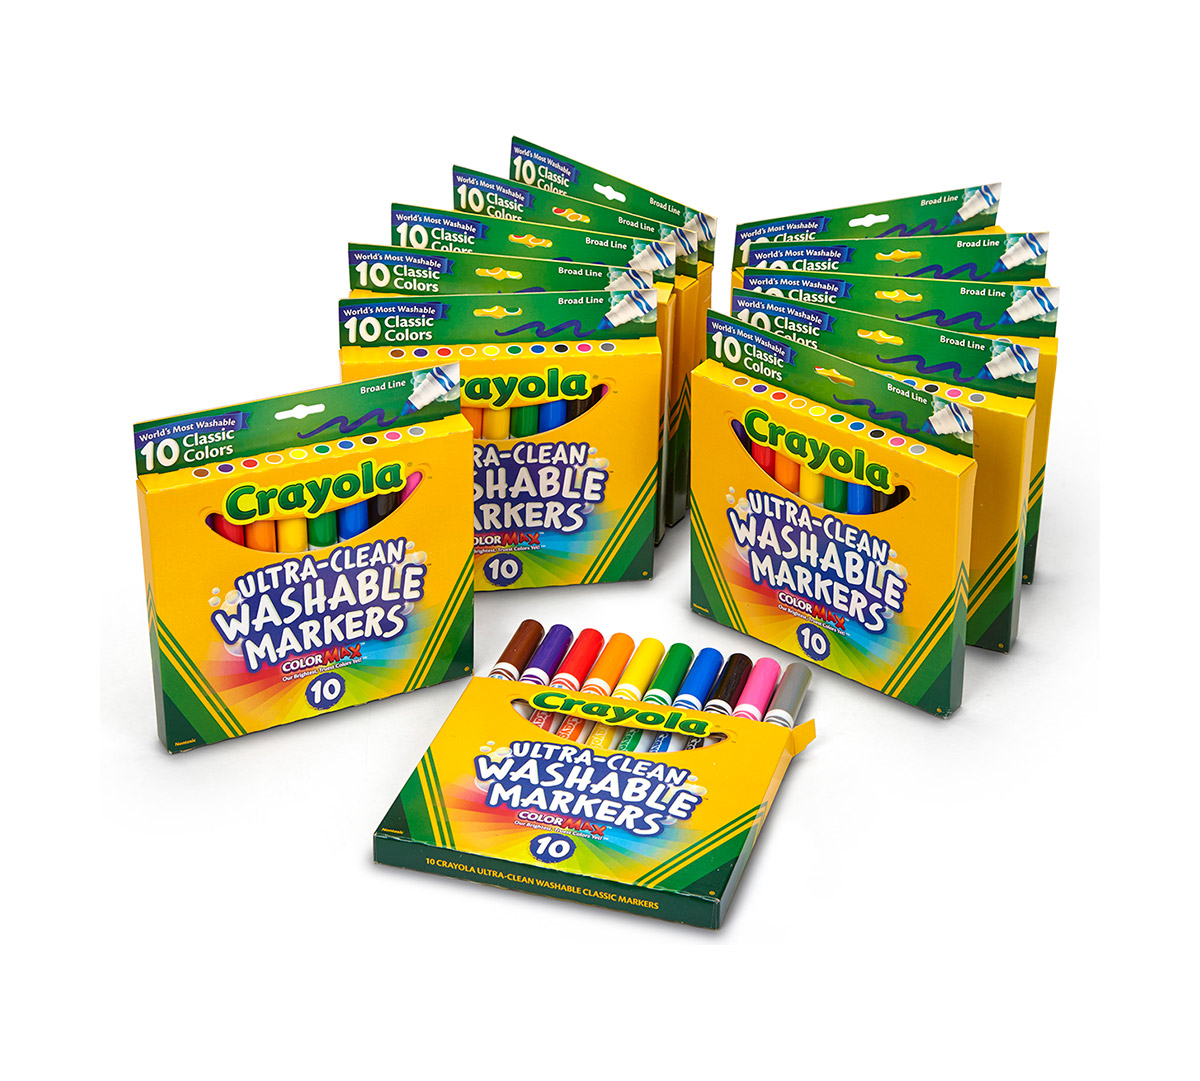 Crayola Ultra-Clean Washable Markers, Broad Line, 12 Pack of 10 Count